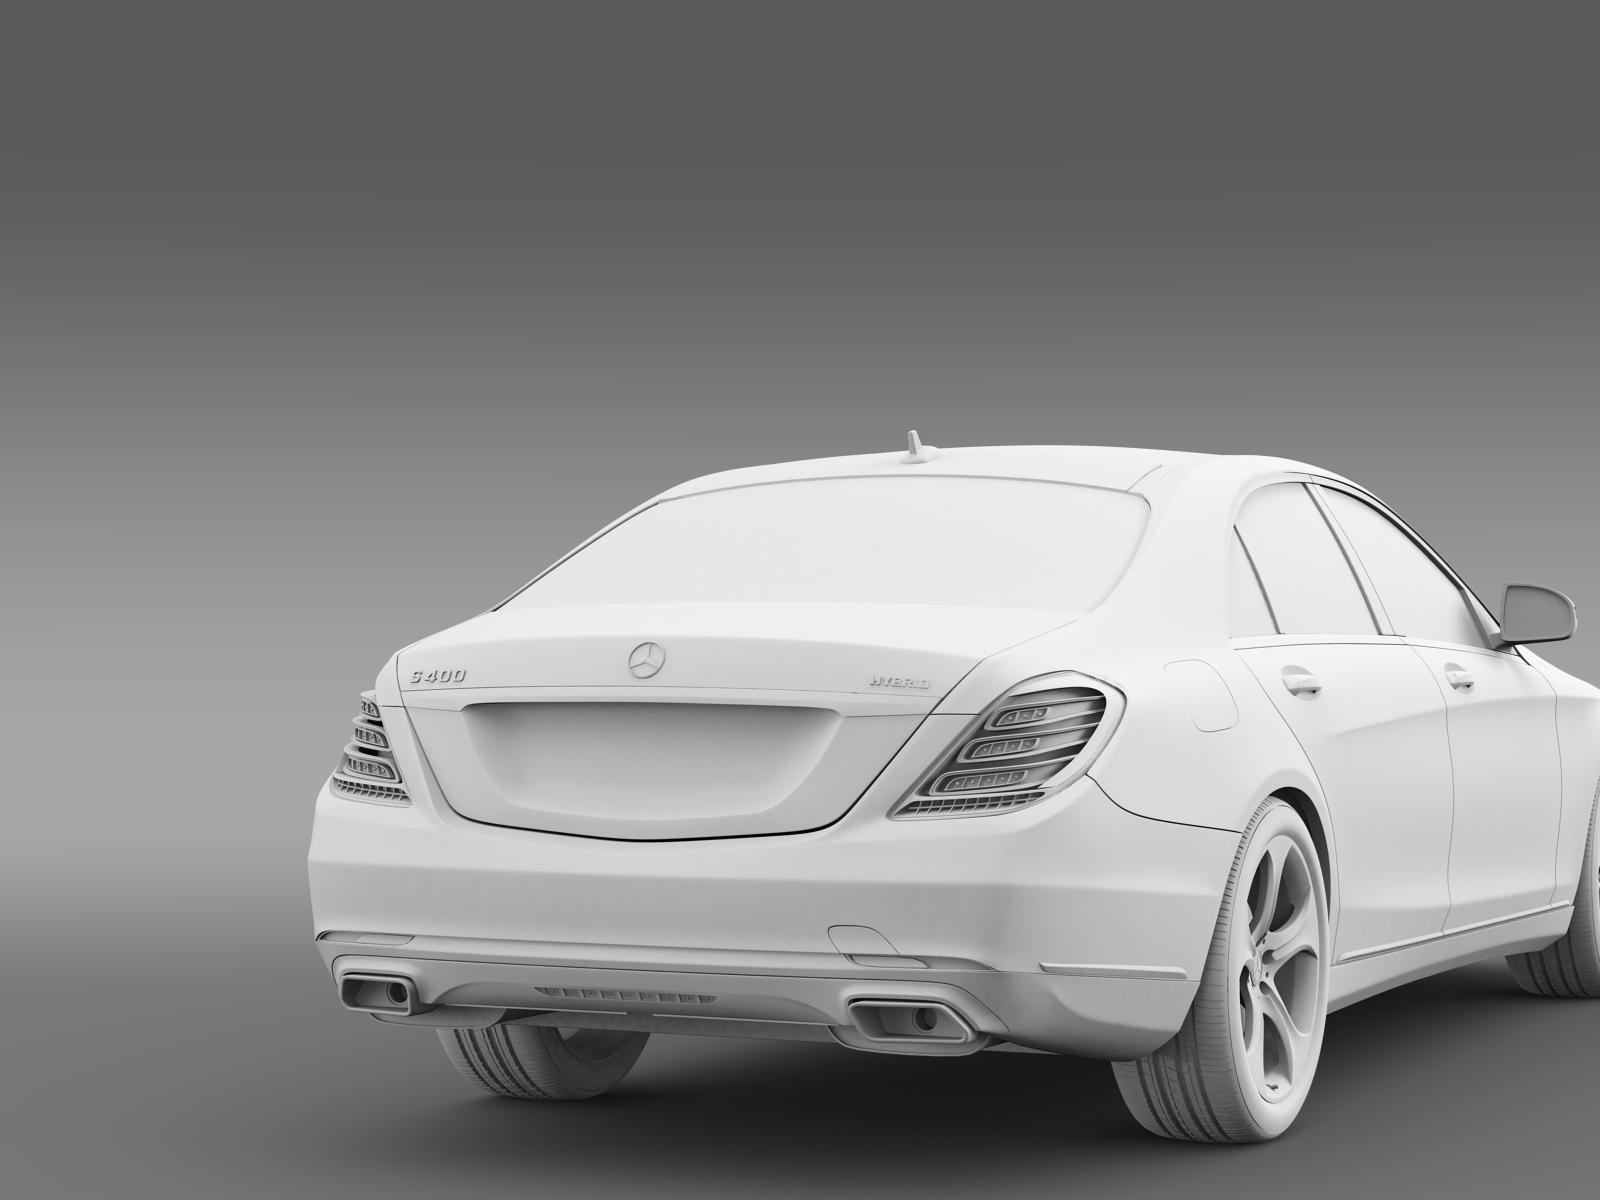 Mercedes benz s 400 hybrid w222 2013 3d model for Hybrid mercedes benz